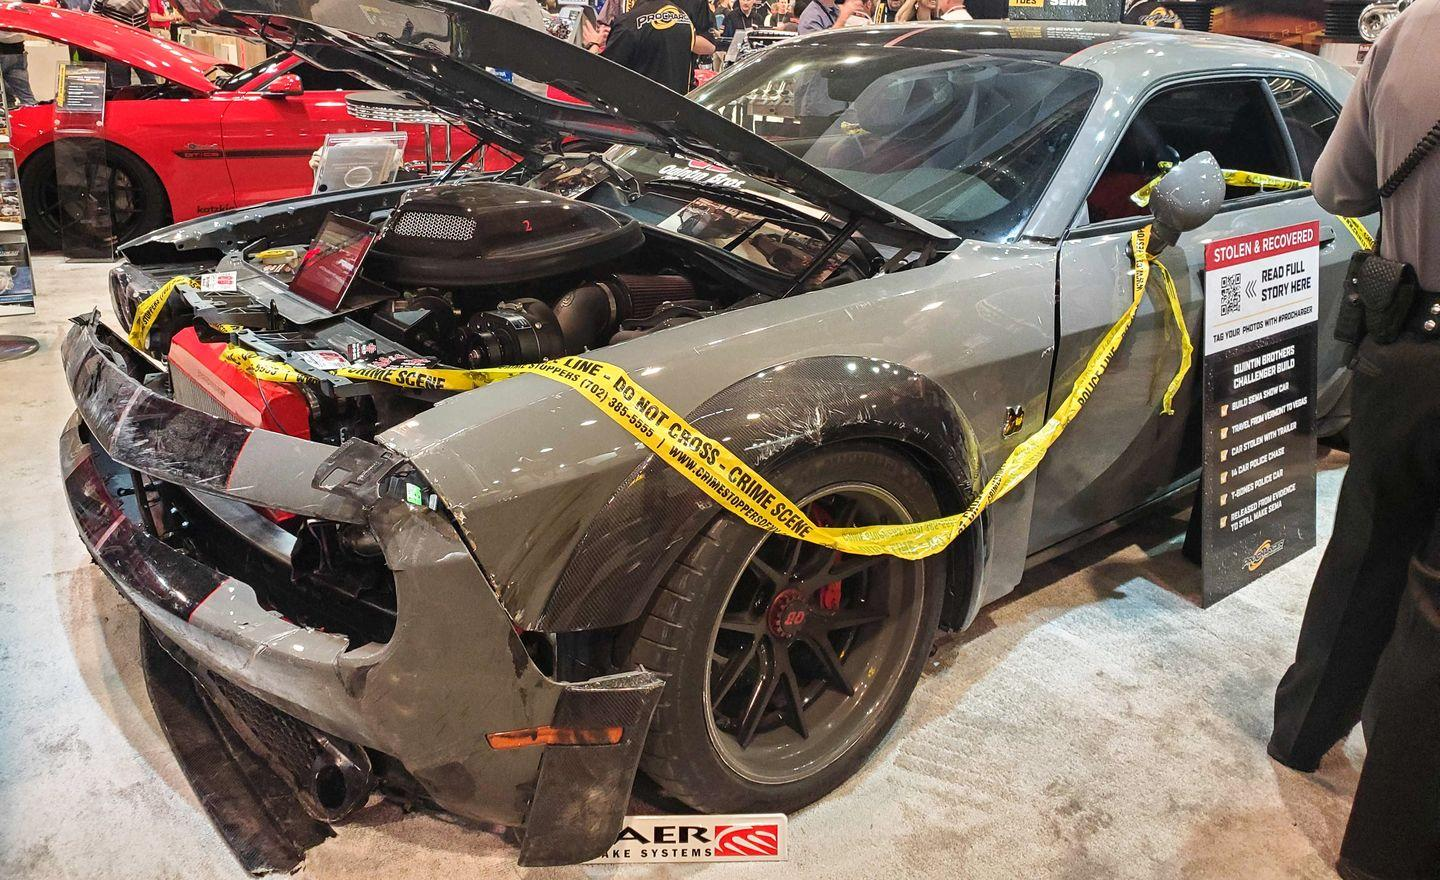 """<p>This 1000-hp Dodge Challenger went on<a href=""""https://www.caranddriver.com/news/a29724966/dodge-challenger-stolen-sema-car-news/"""" rel=""""nofollow noopener"""" target=""""_blank"""" data-ylk=""""slk:a wild adventure"""" class=""""link rapid-noclick-resp""""> a wild adventure</a> after it arrived in Las Vegas. Vermont-based Quintin Brothers Auto & Performance had their truck and trailer stolen days before the show. Their custom Challenger was inside. Video surveillance helped track down the perp, but when Nevada state trooper Adam Whitmarsh tried to block the stolen Challenger into a parking space, the suspect rammed the Trooper's Ford Explorer and escaped. After exiting the parking structure, the suspect smashed through a fence and drove the stolen Challenger across a nearby karting track—during a karting event. He eventually ditched the car and was later arrested. The Quintin Brothers and their Dodge Challenger arrived at the SEMA show wearing battle wounds from the wild chase, and their crew was thankful they were able to show off all their hard work.</p>"""